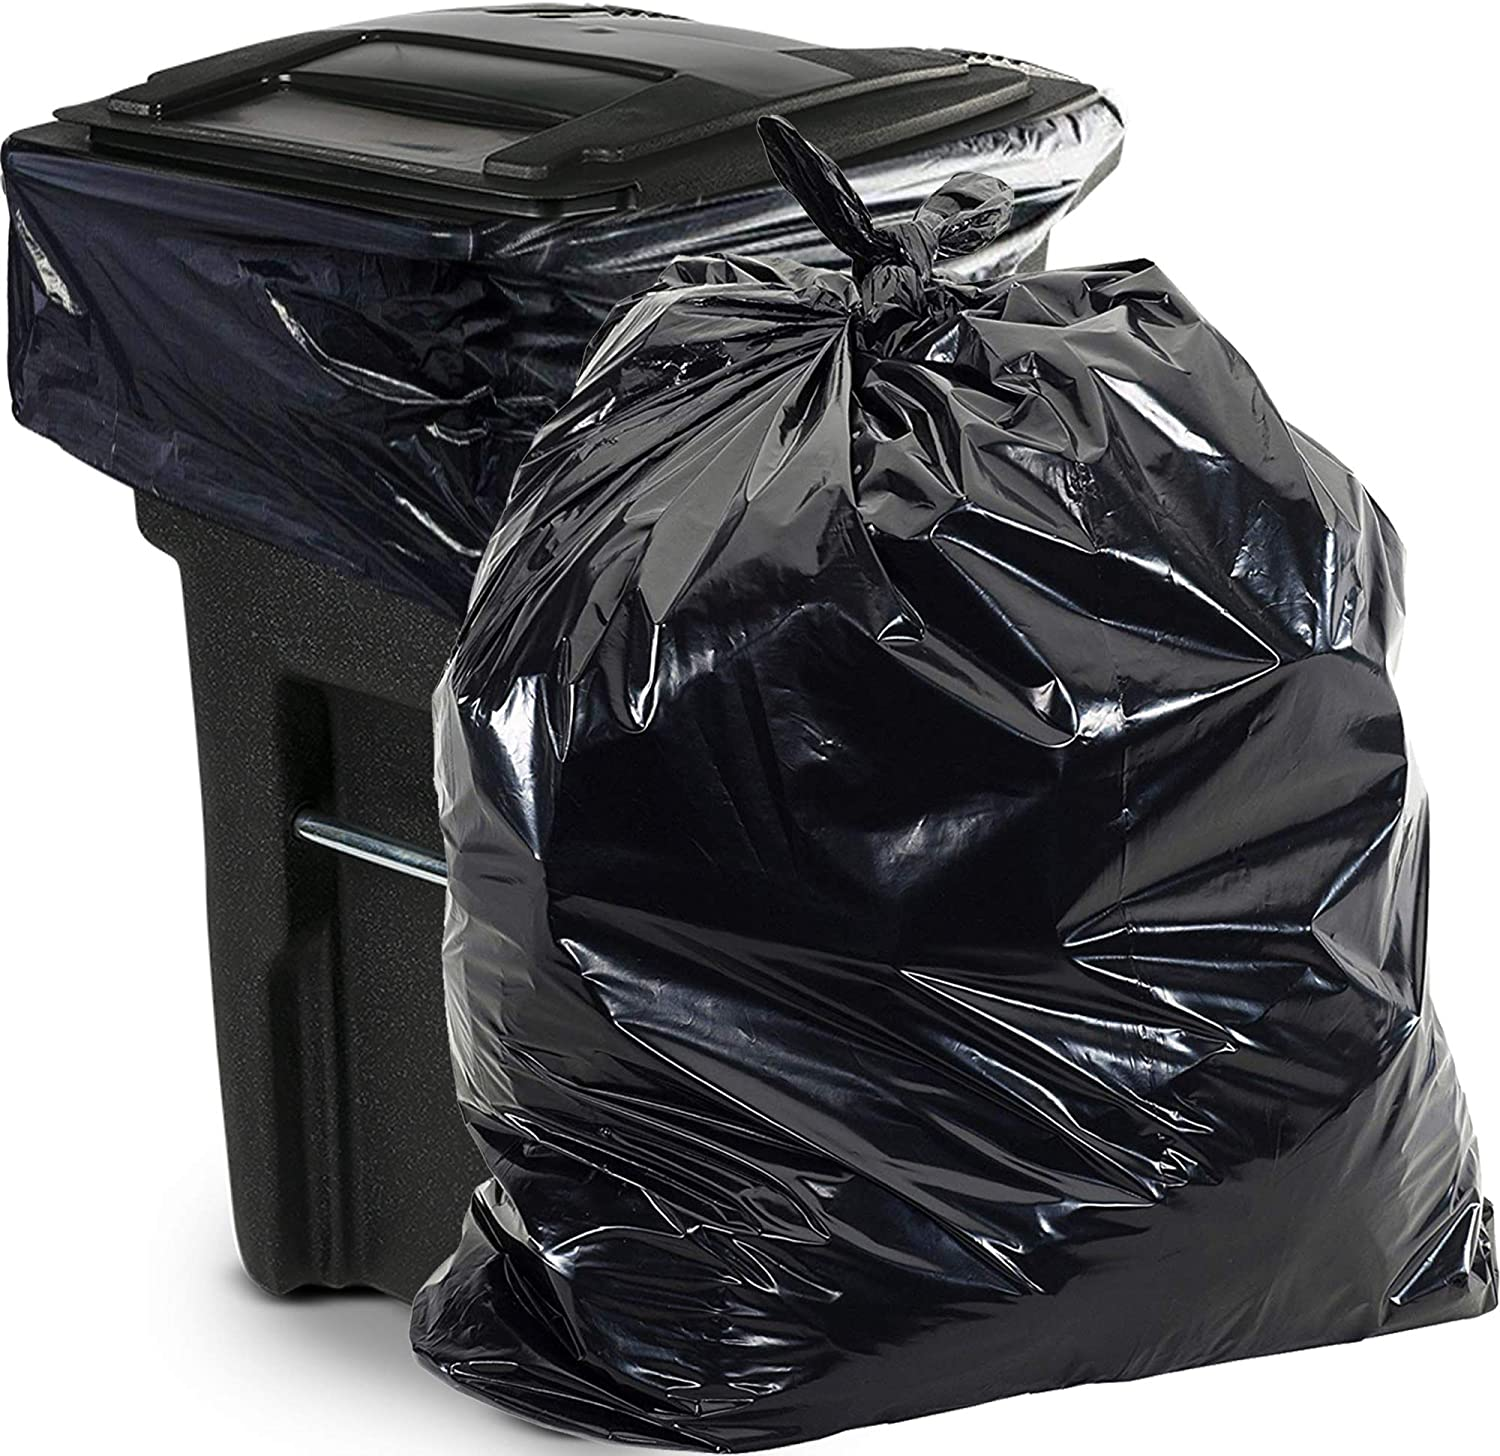 """65 Gallon Trash Bags Heavy Duty - (Huge 50 Pack) - 1.5 MIL - 50"""" x 48"""" - Large Black Plastic Garbage Can Liners for Contractor, Lawn and Leaf, Outdoor, Storage, Commercial, Industrial, Toter, Bag"""